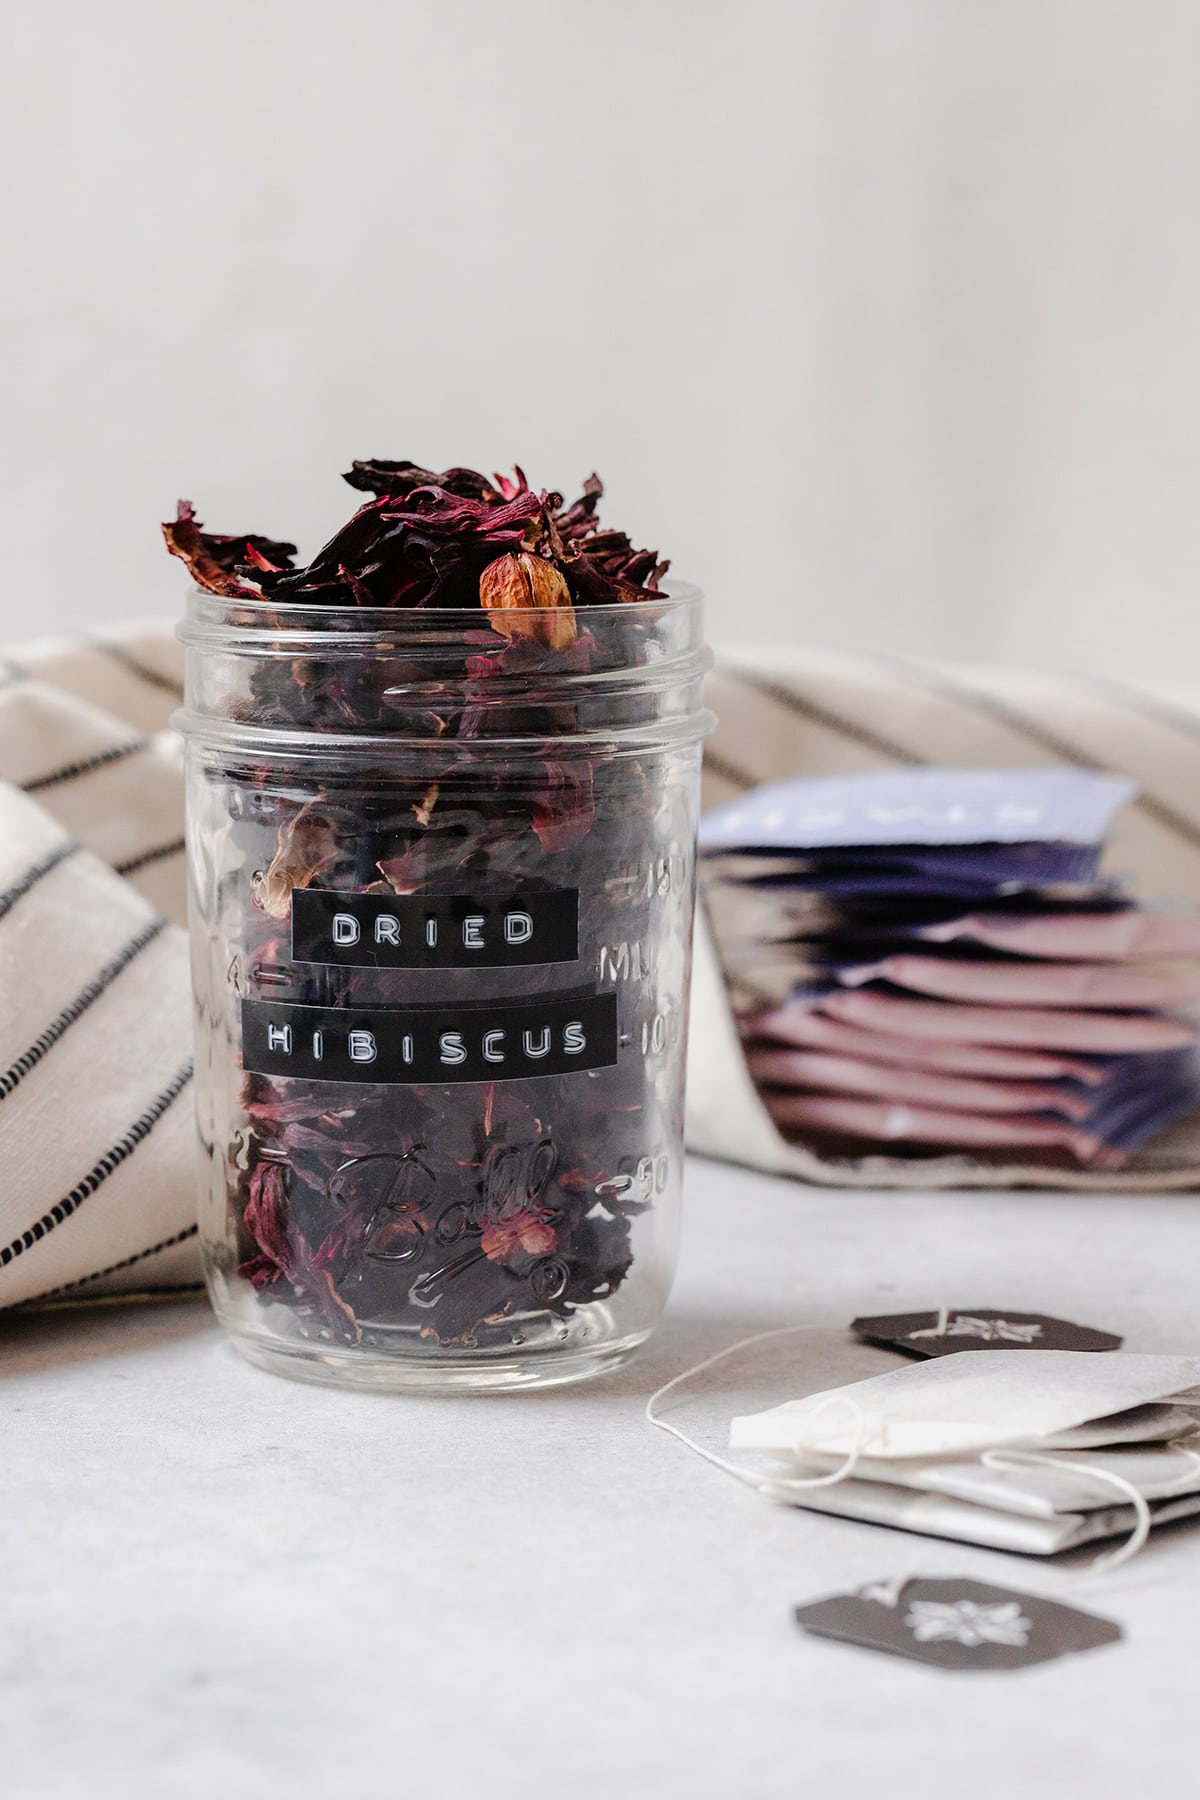 Dried hibiscus flower in a glass jar. On a light grey background with loose tea bags on the right side.